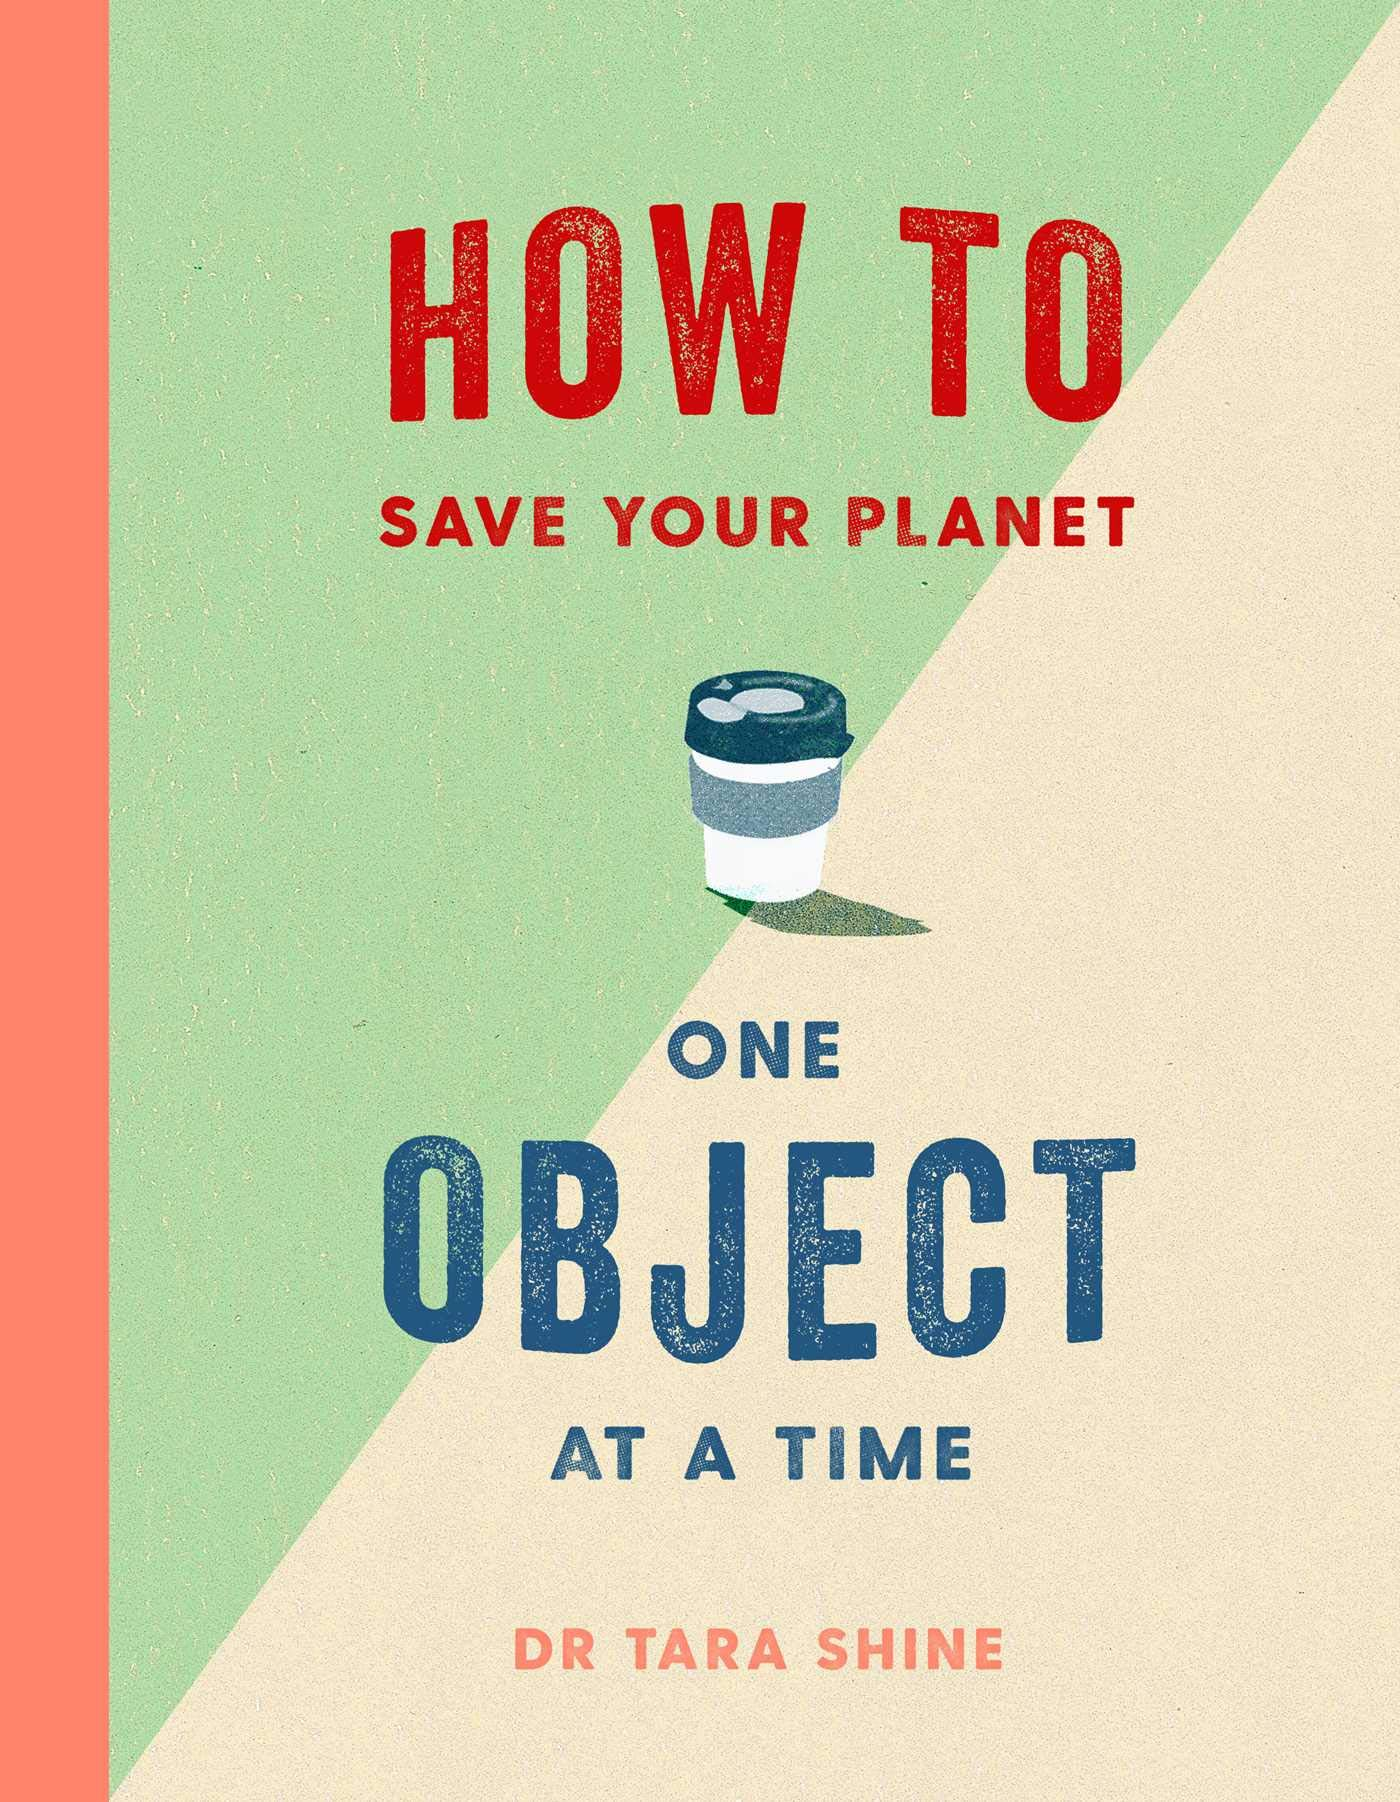 How to Save Your Planet One Object at a Time: Amazon.co.uk: Shine, Tara:  9781471184109: Books